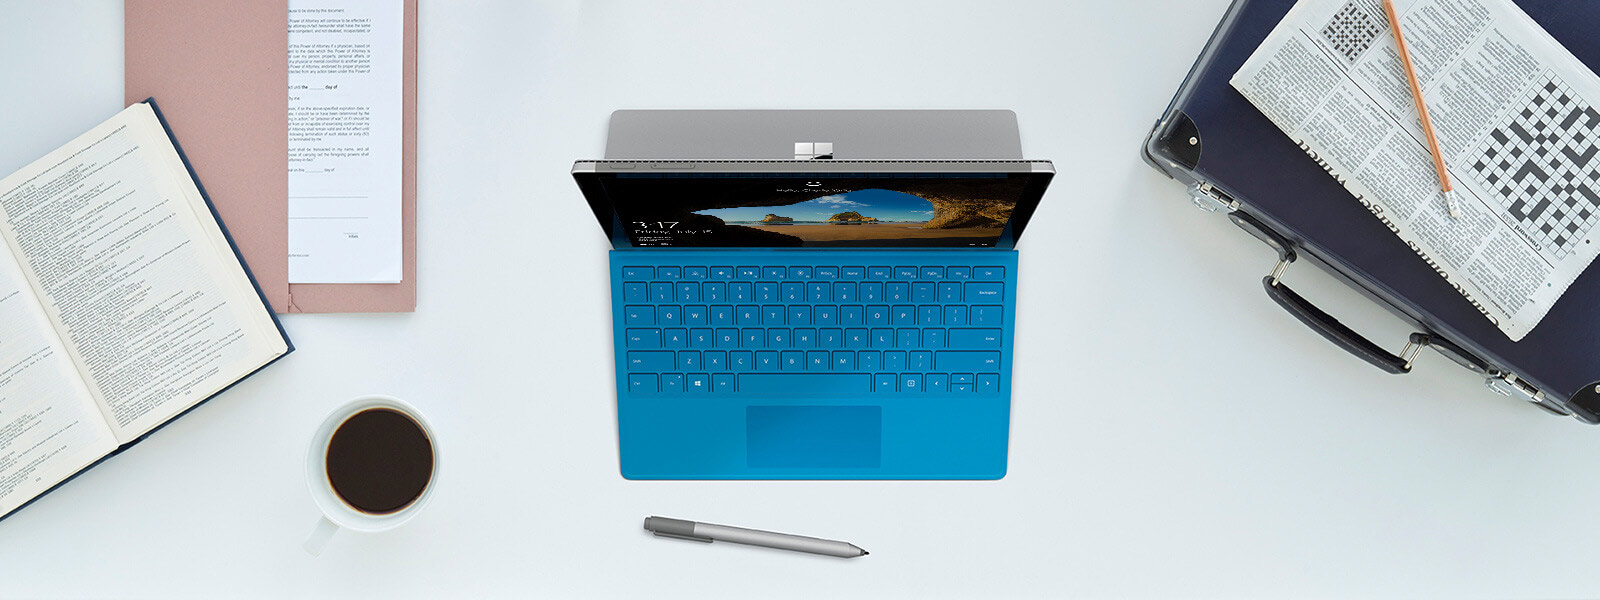 Surface For The Legal Sector Technology And Devices Surface